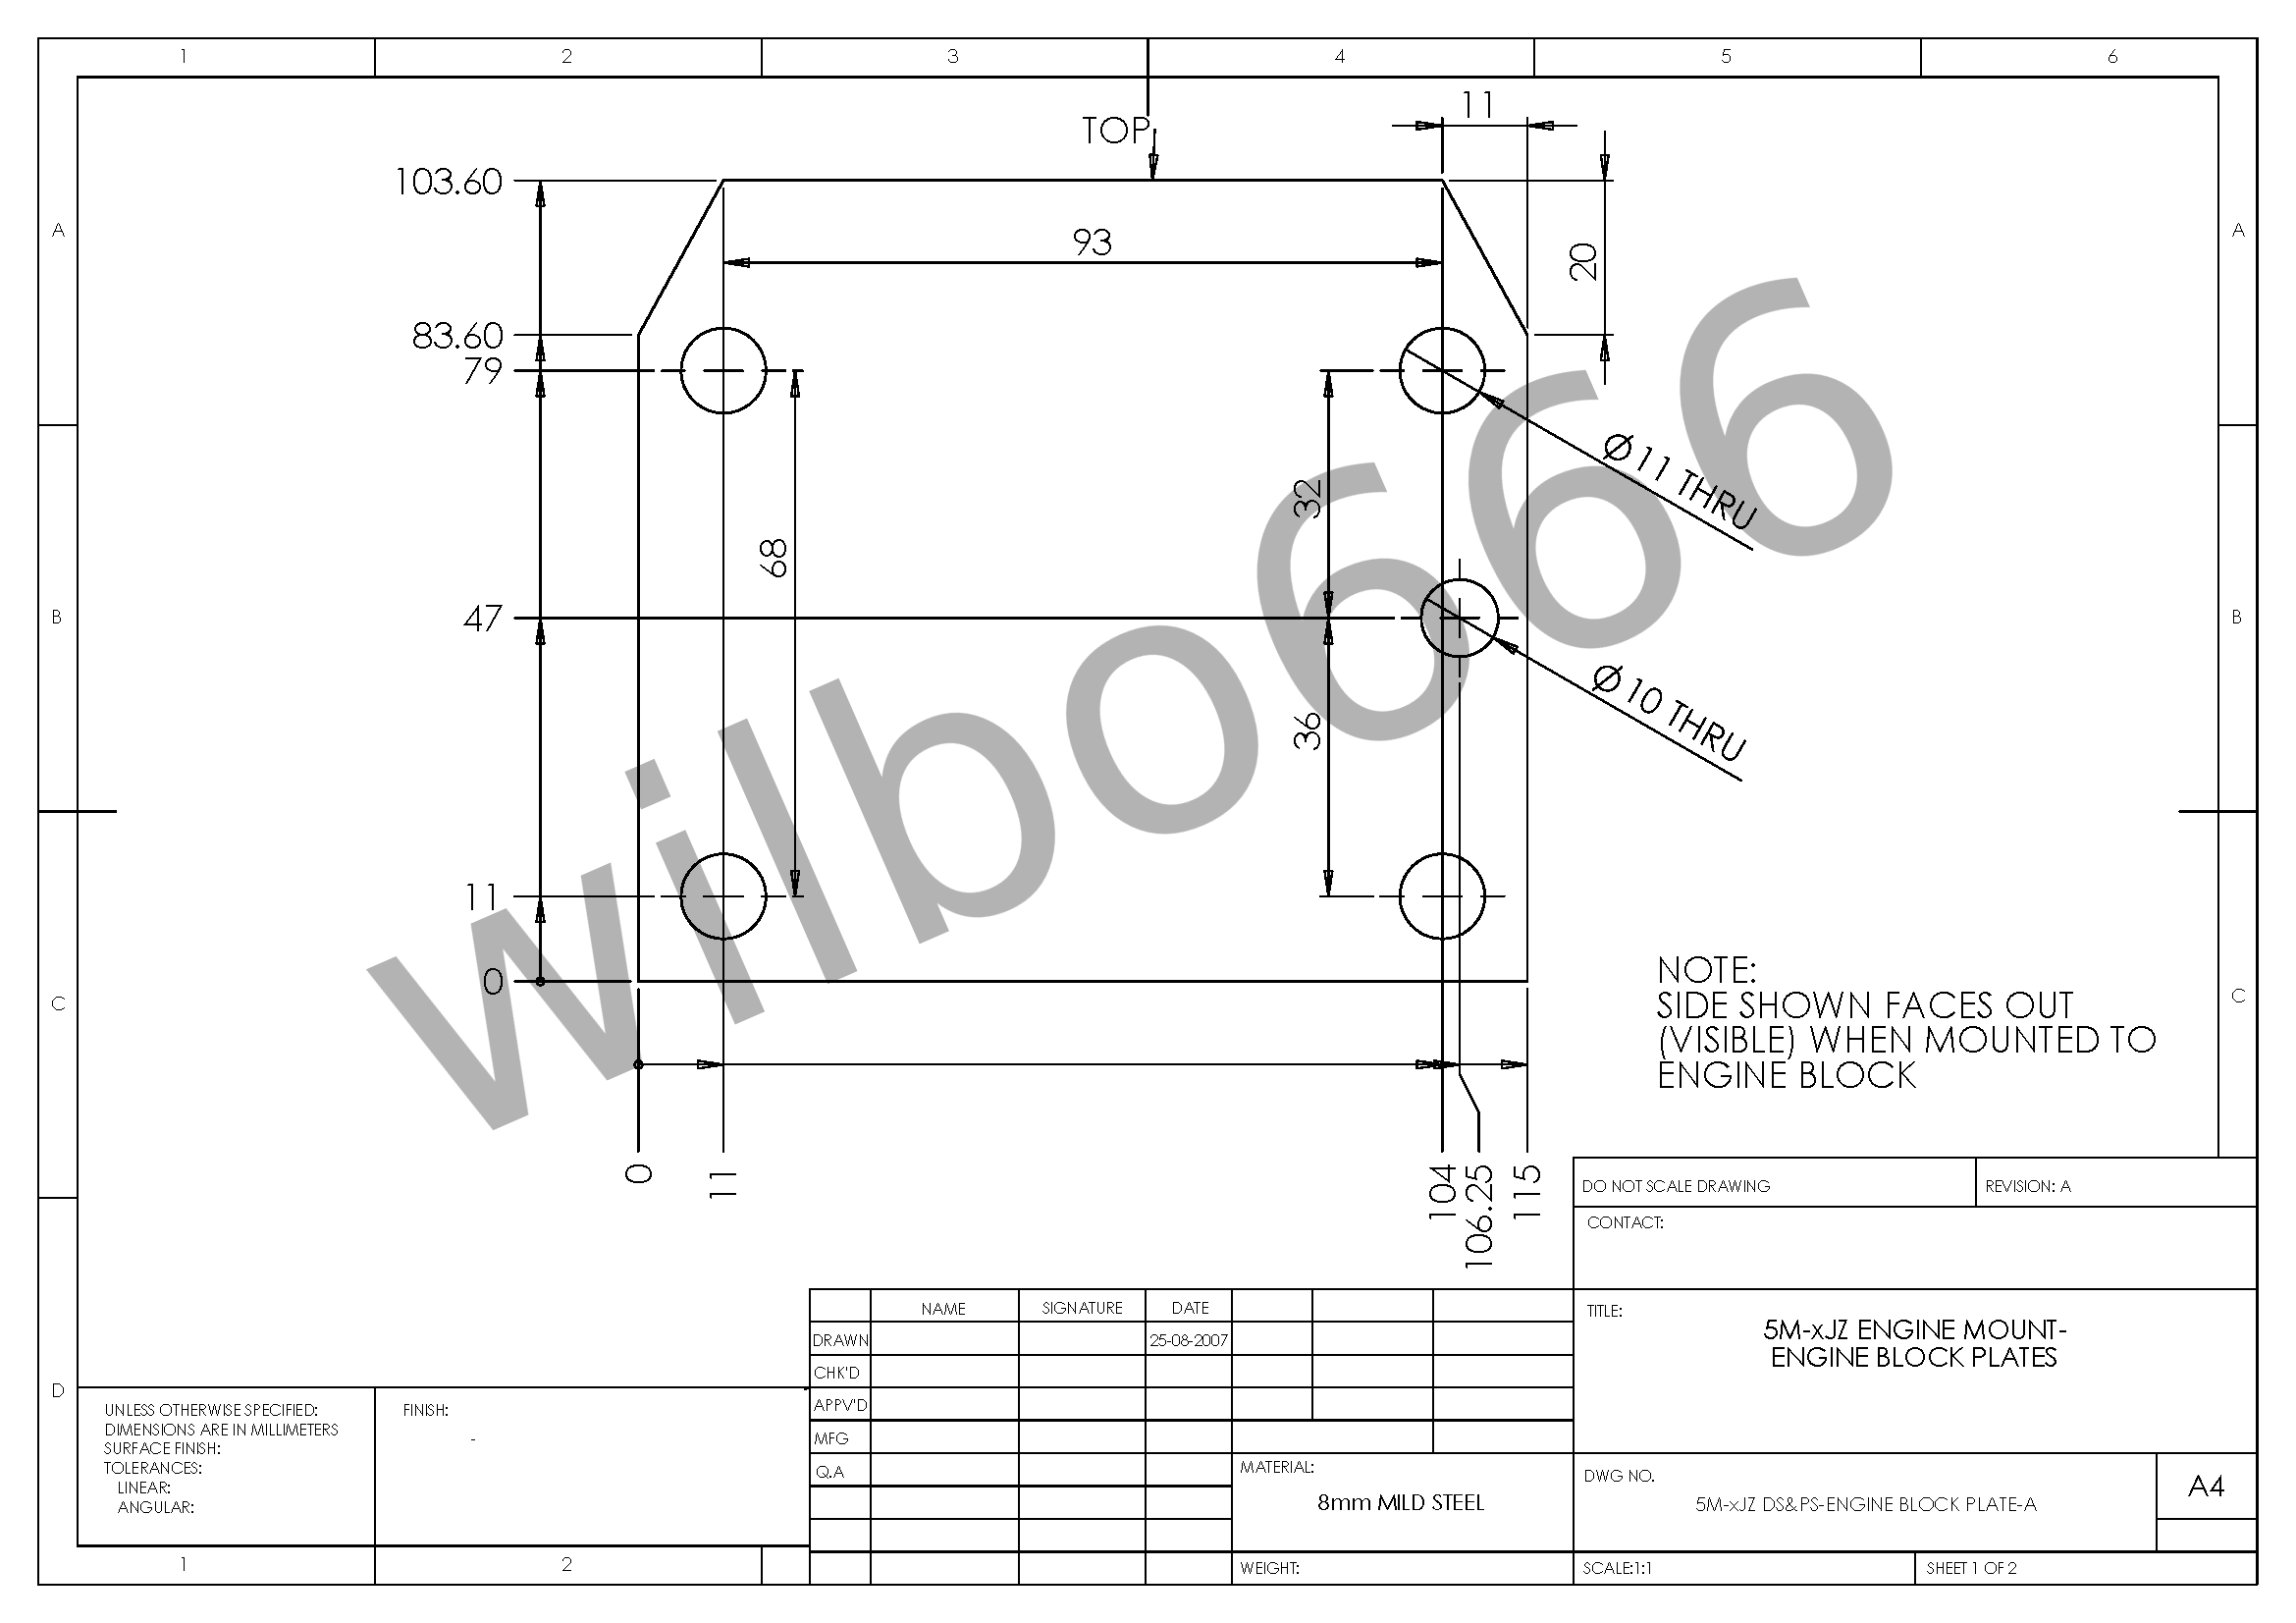 Wilbo666 m series engine to xjz series engine conversion engine please click on the drawing images to be taken to a higher resolution version pooptronica